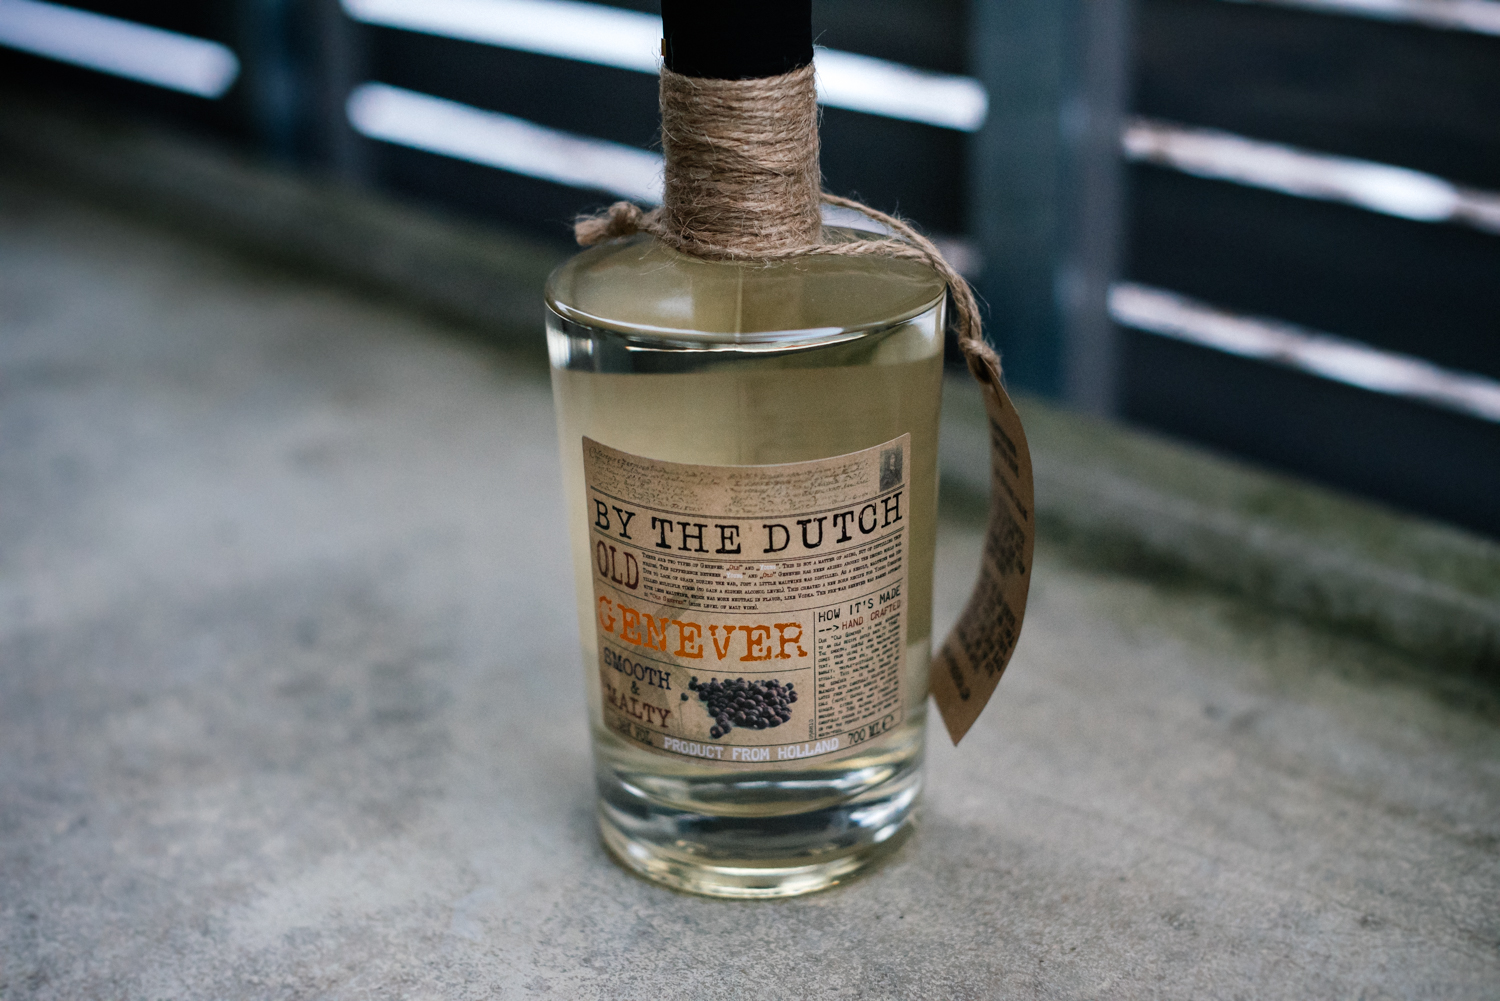 By the Dutch Old Genever